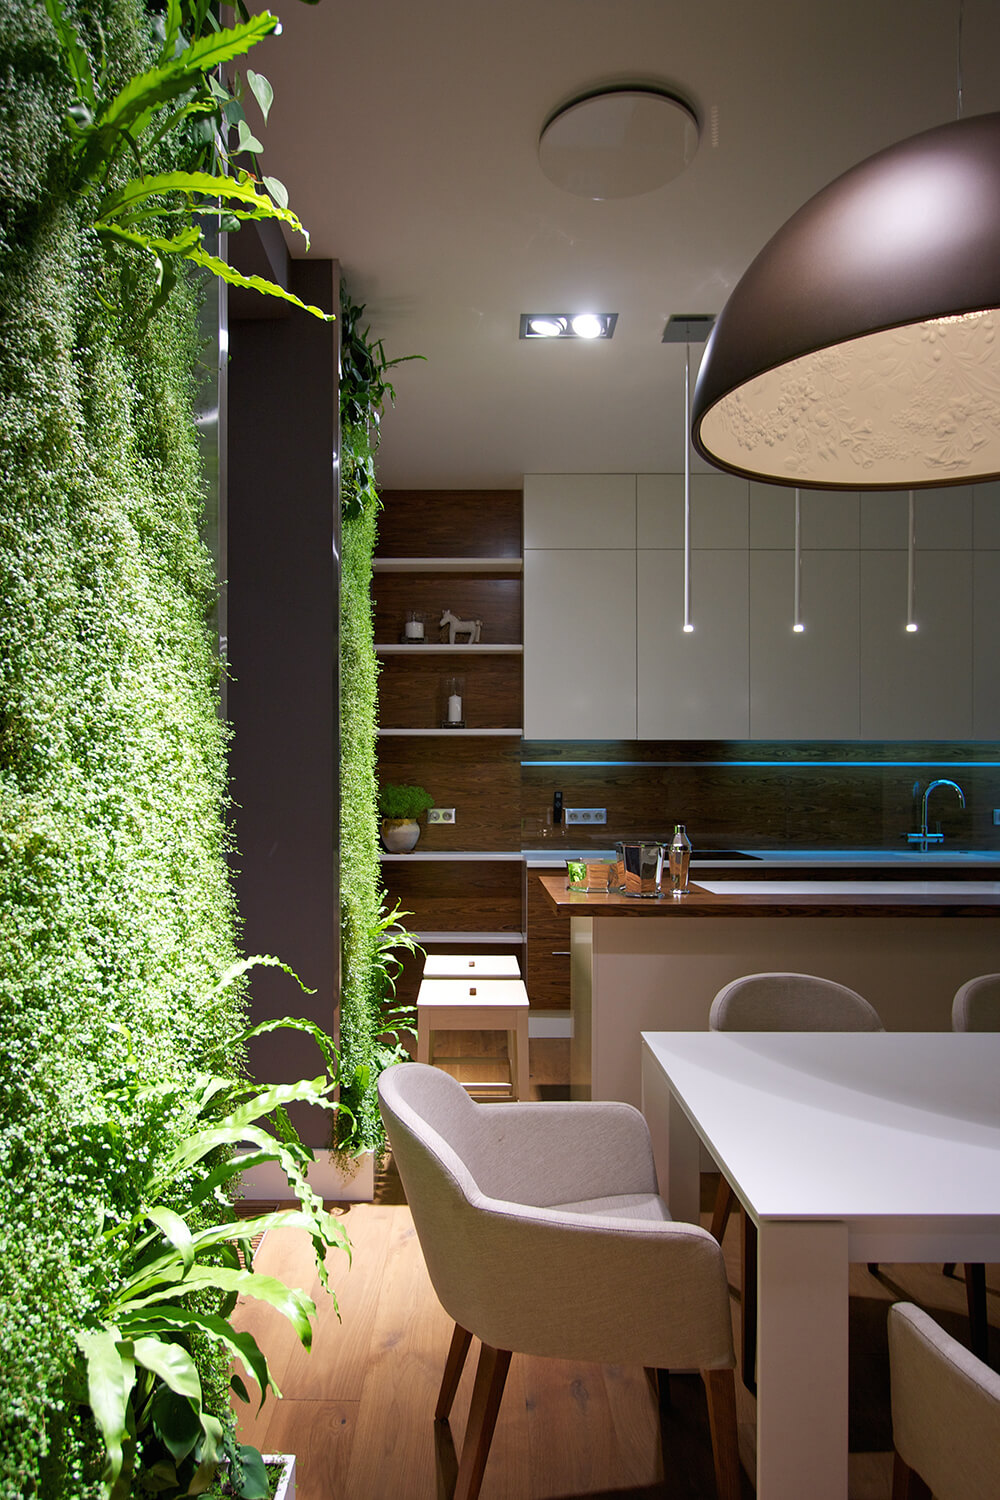 This angle allows us to see the open shelving on the side of the cabinets, along with several small stools. We can also admire the immense texture the green walls add to the room.